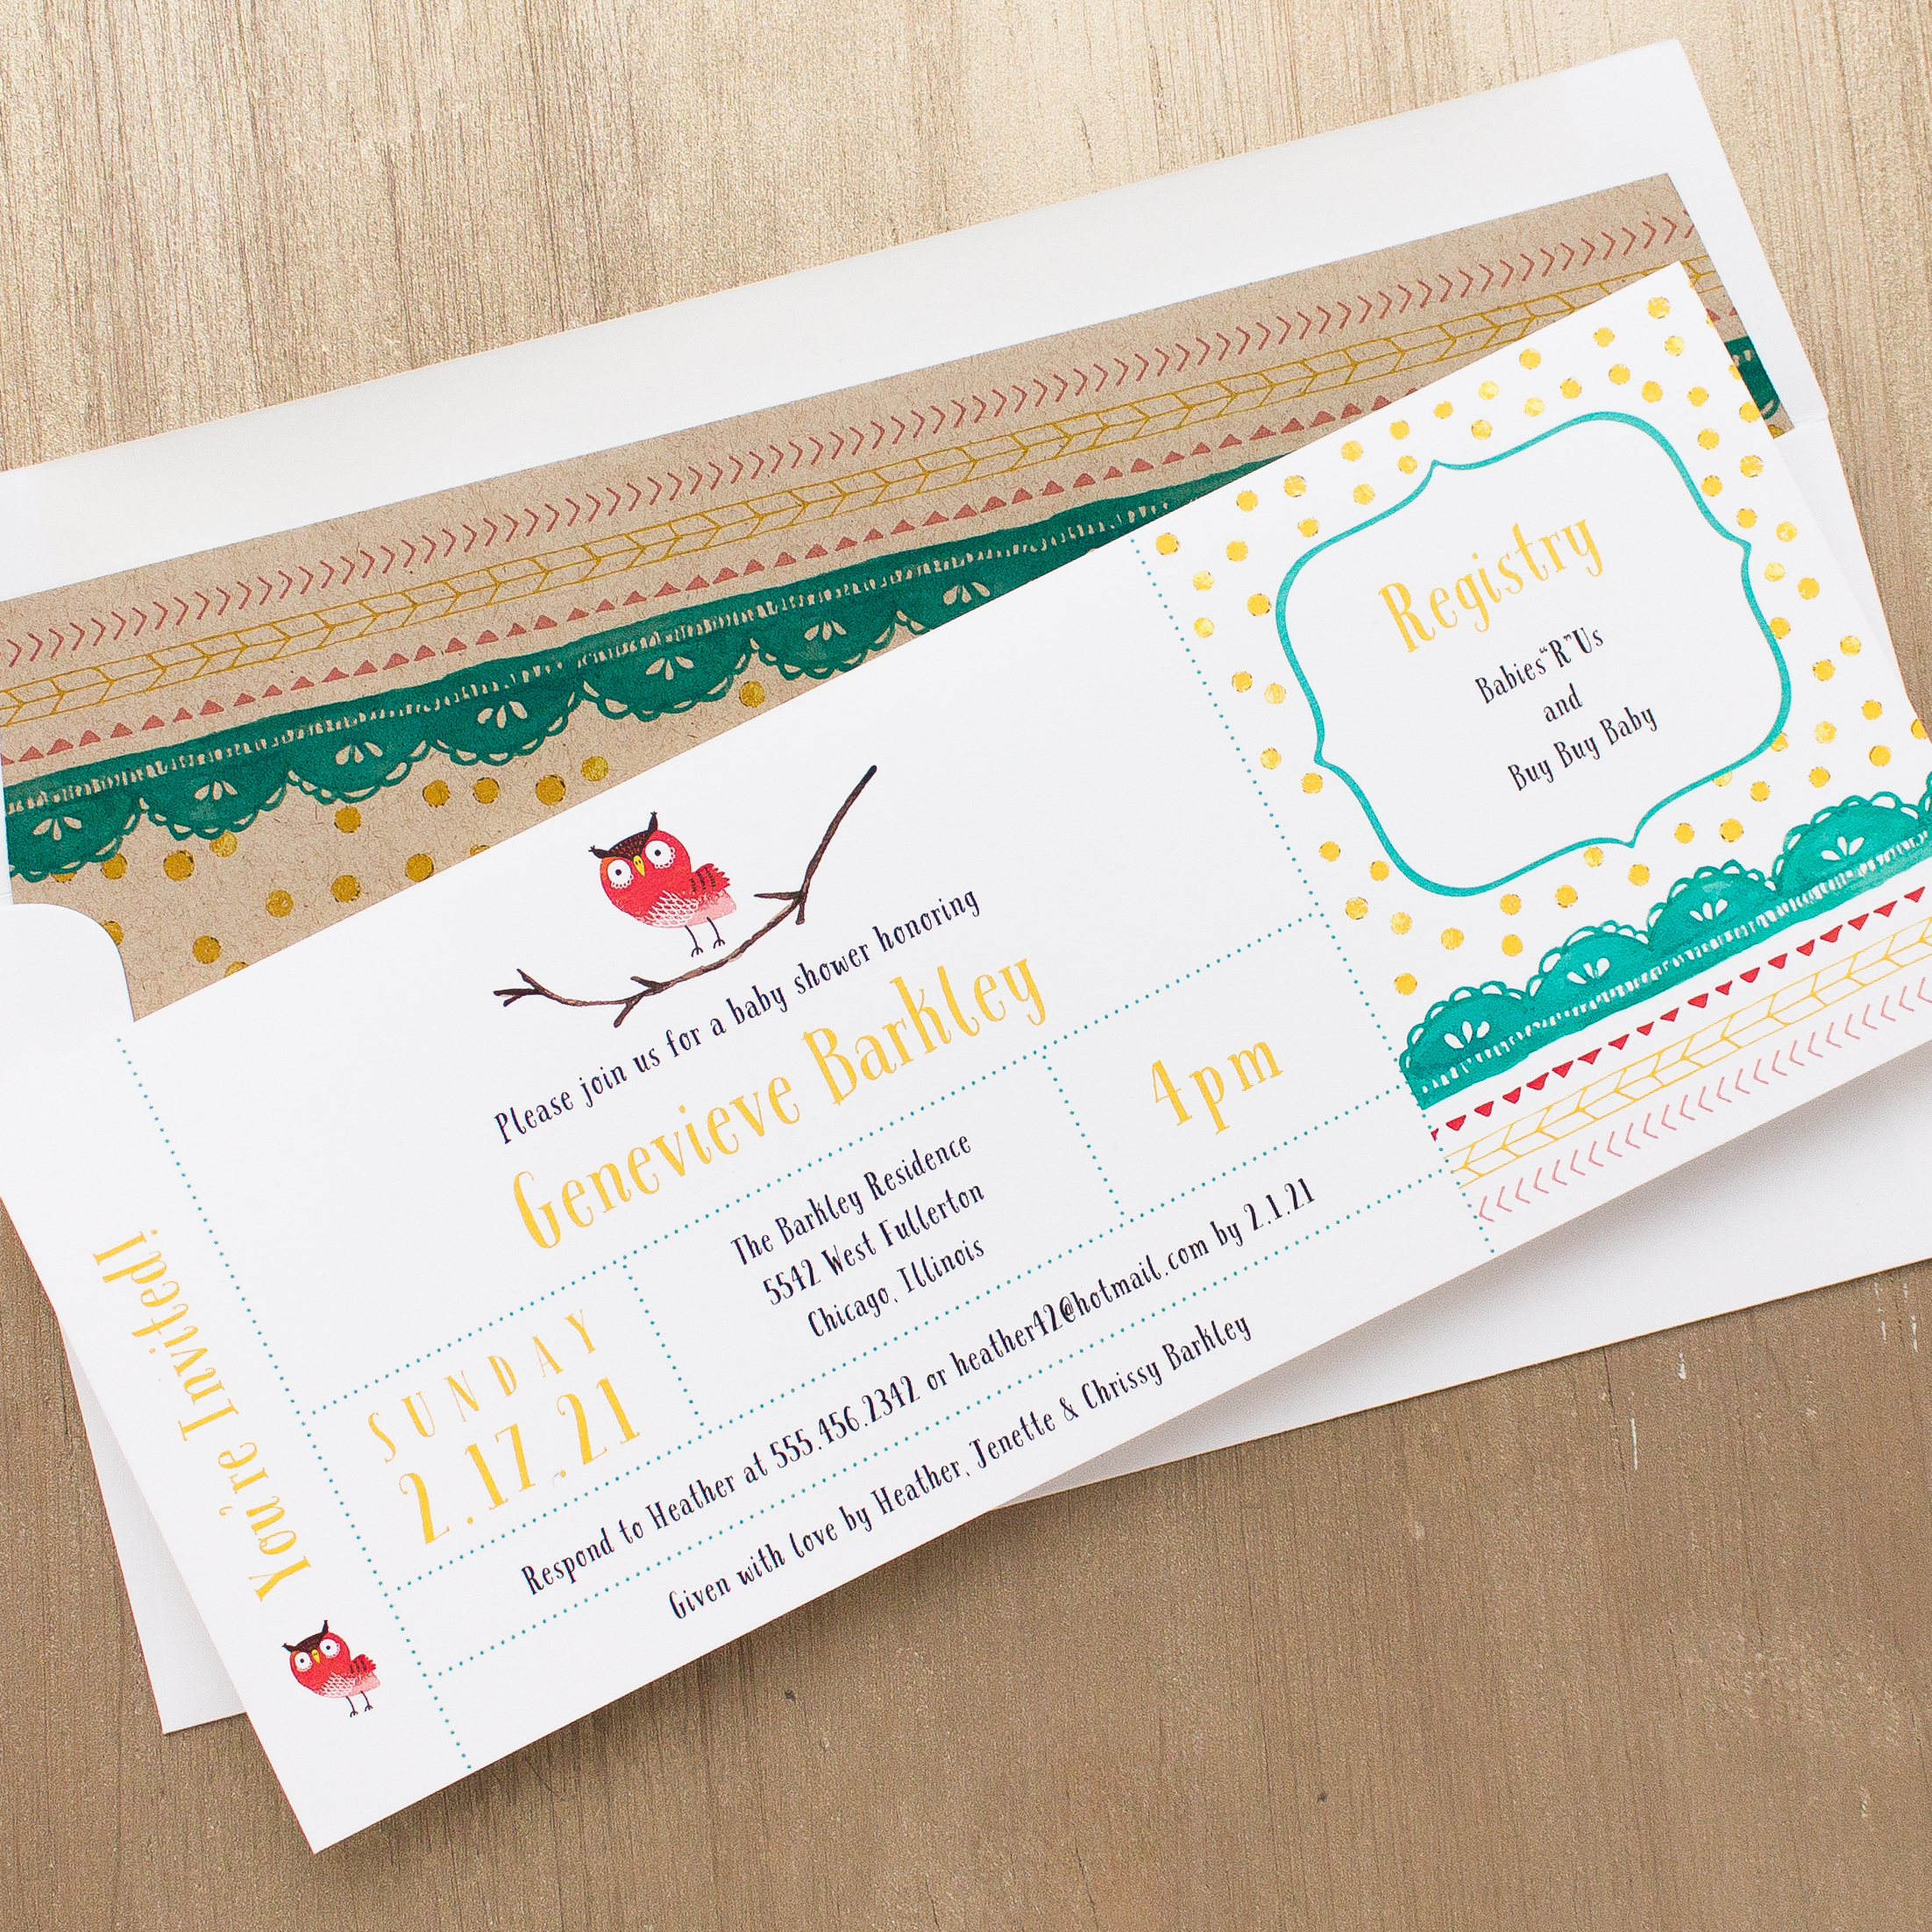 Blank Owl Baby Shower Invitations: Little Owl Baby Shower Invites With Envelope Liners